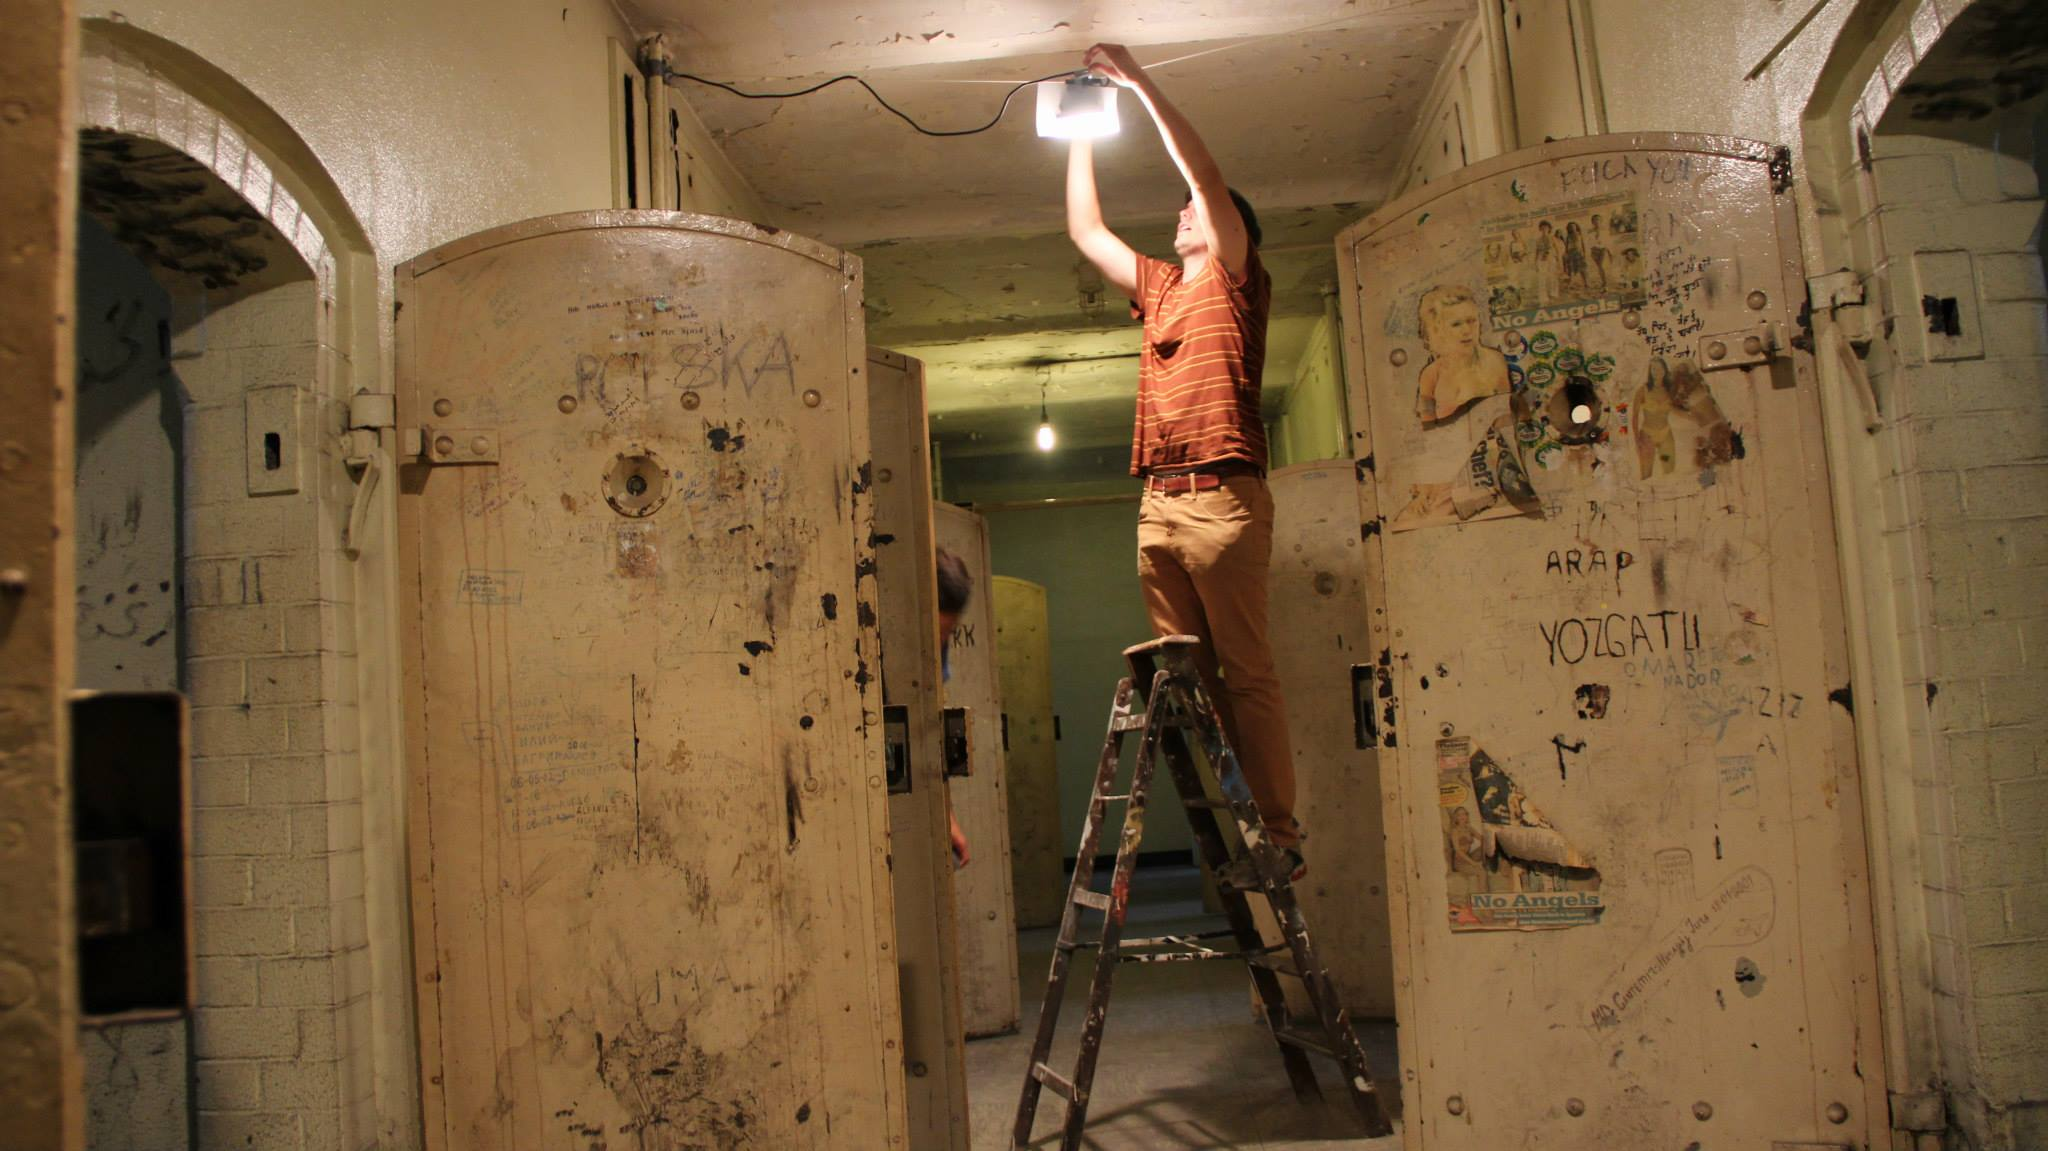 A man stands on a ladder and adjusts a light hanging overhead. He appears to be inside an abandoned building